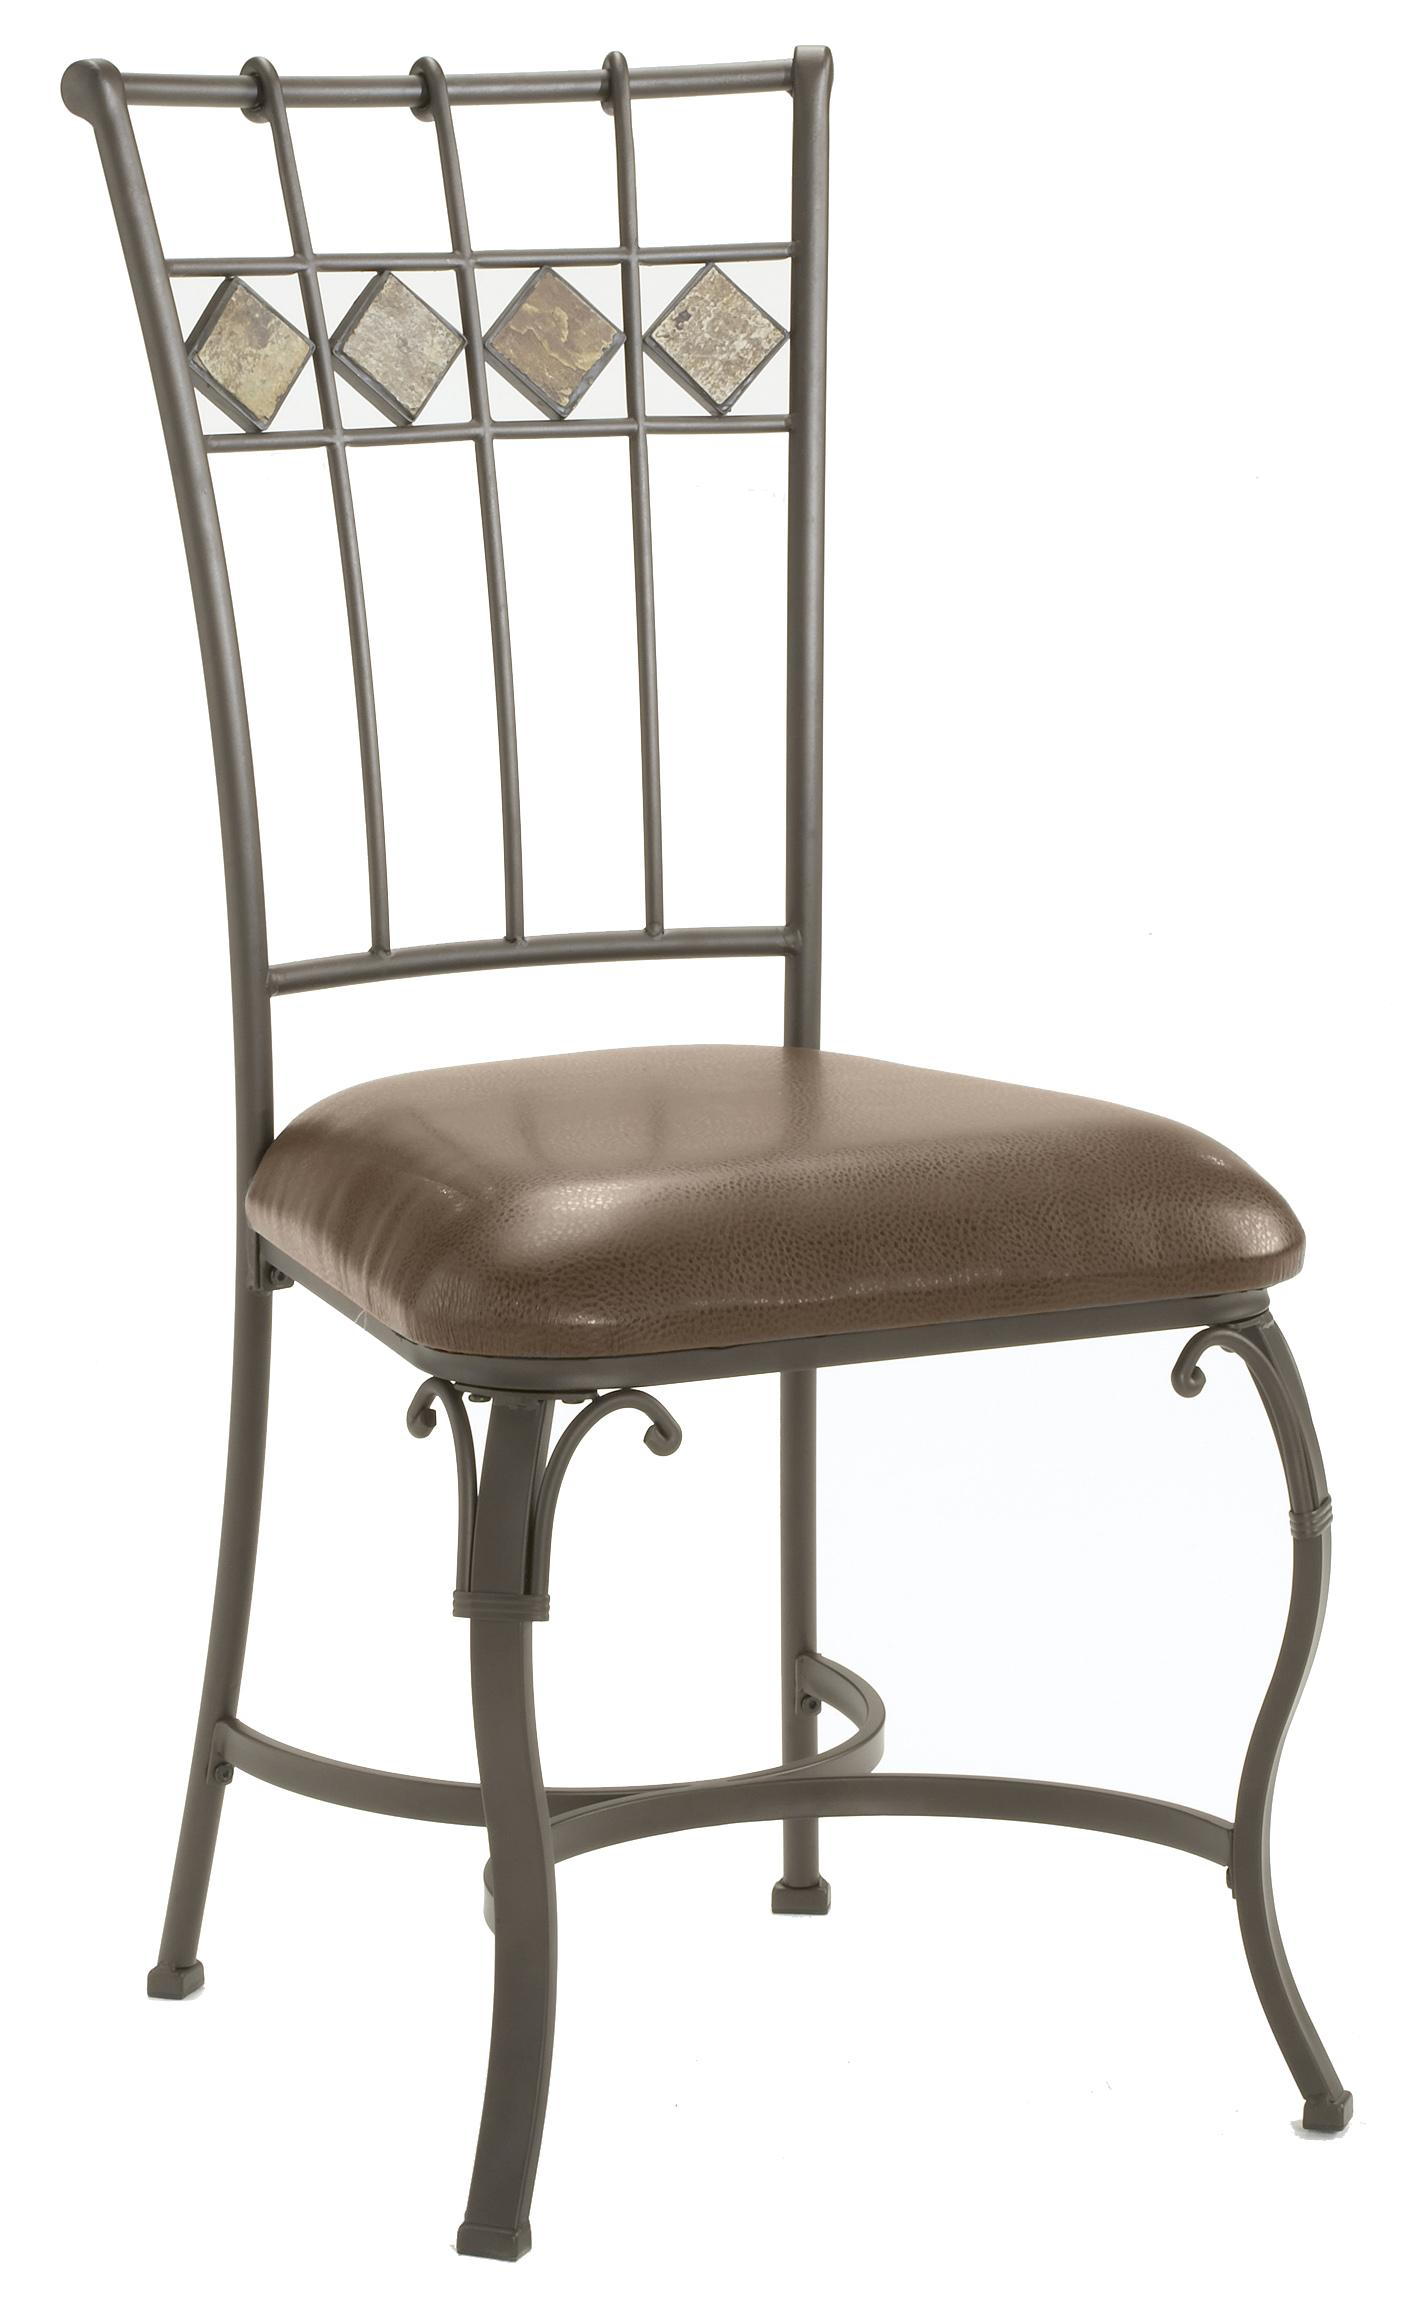 Hillsdale Lakeview Dining Chair with Slate in Back - Item Number: 4264-802